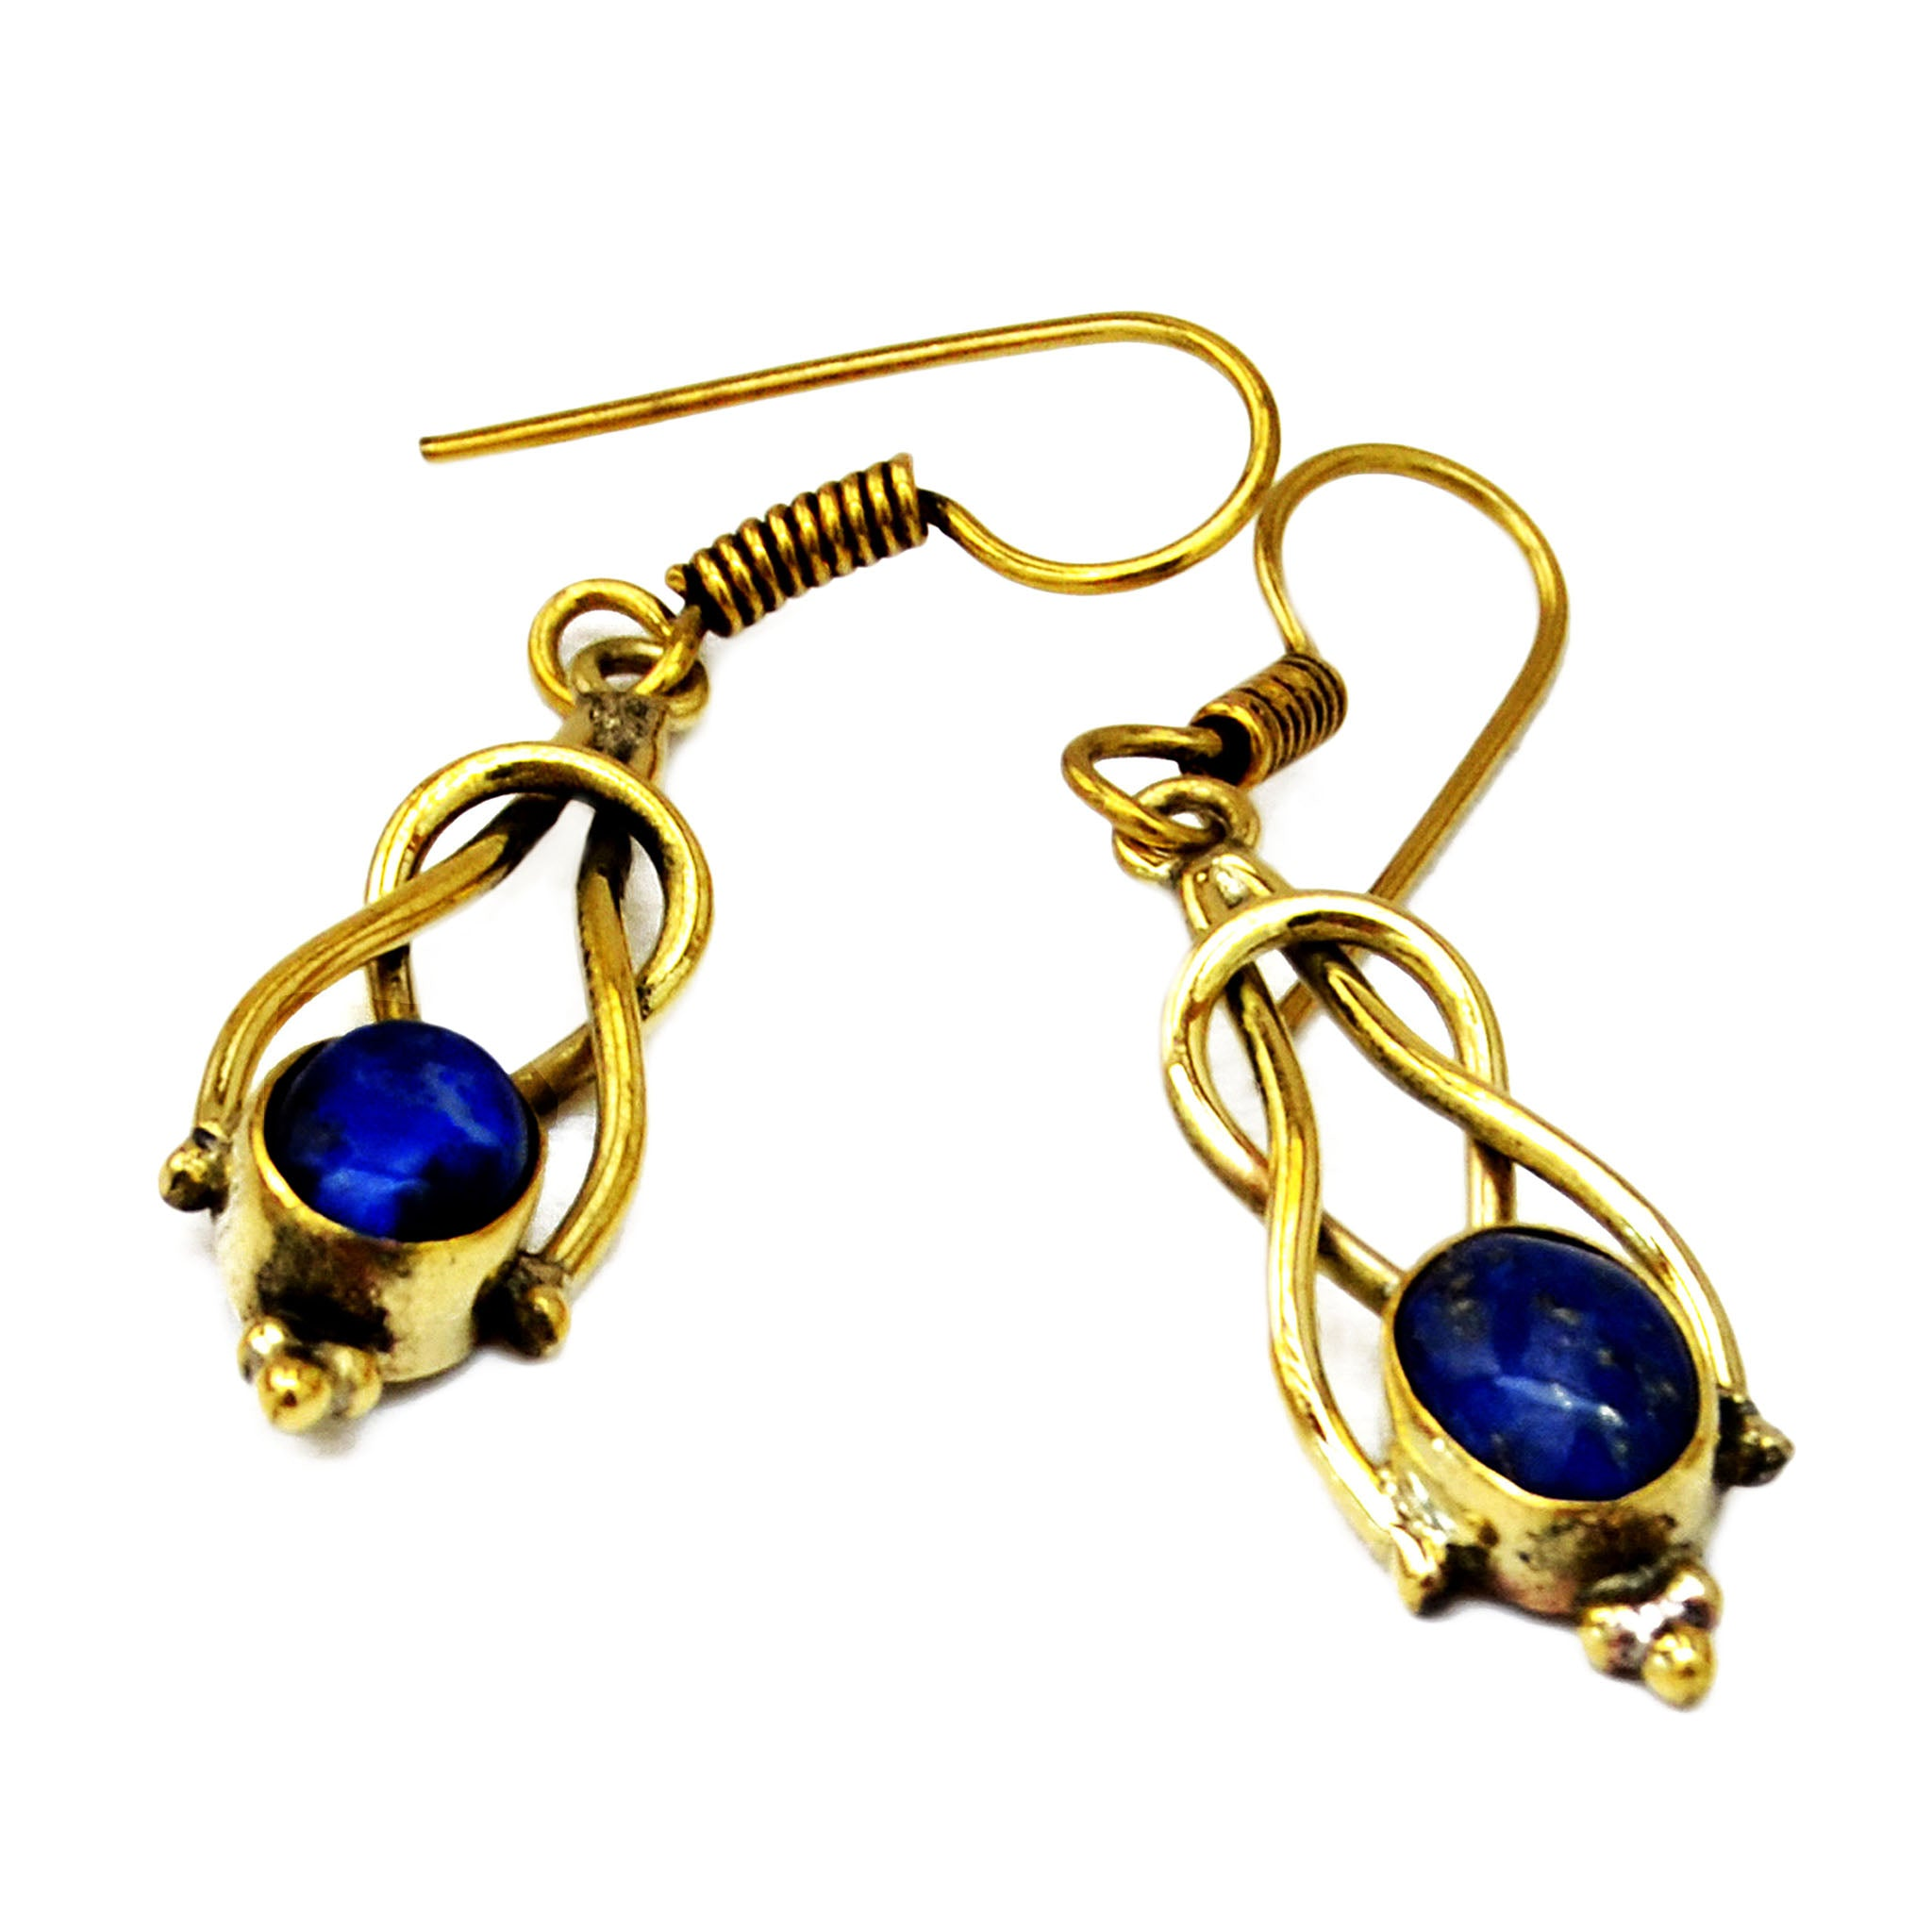 Elegant indian brass drop earrings with lapis lazuli